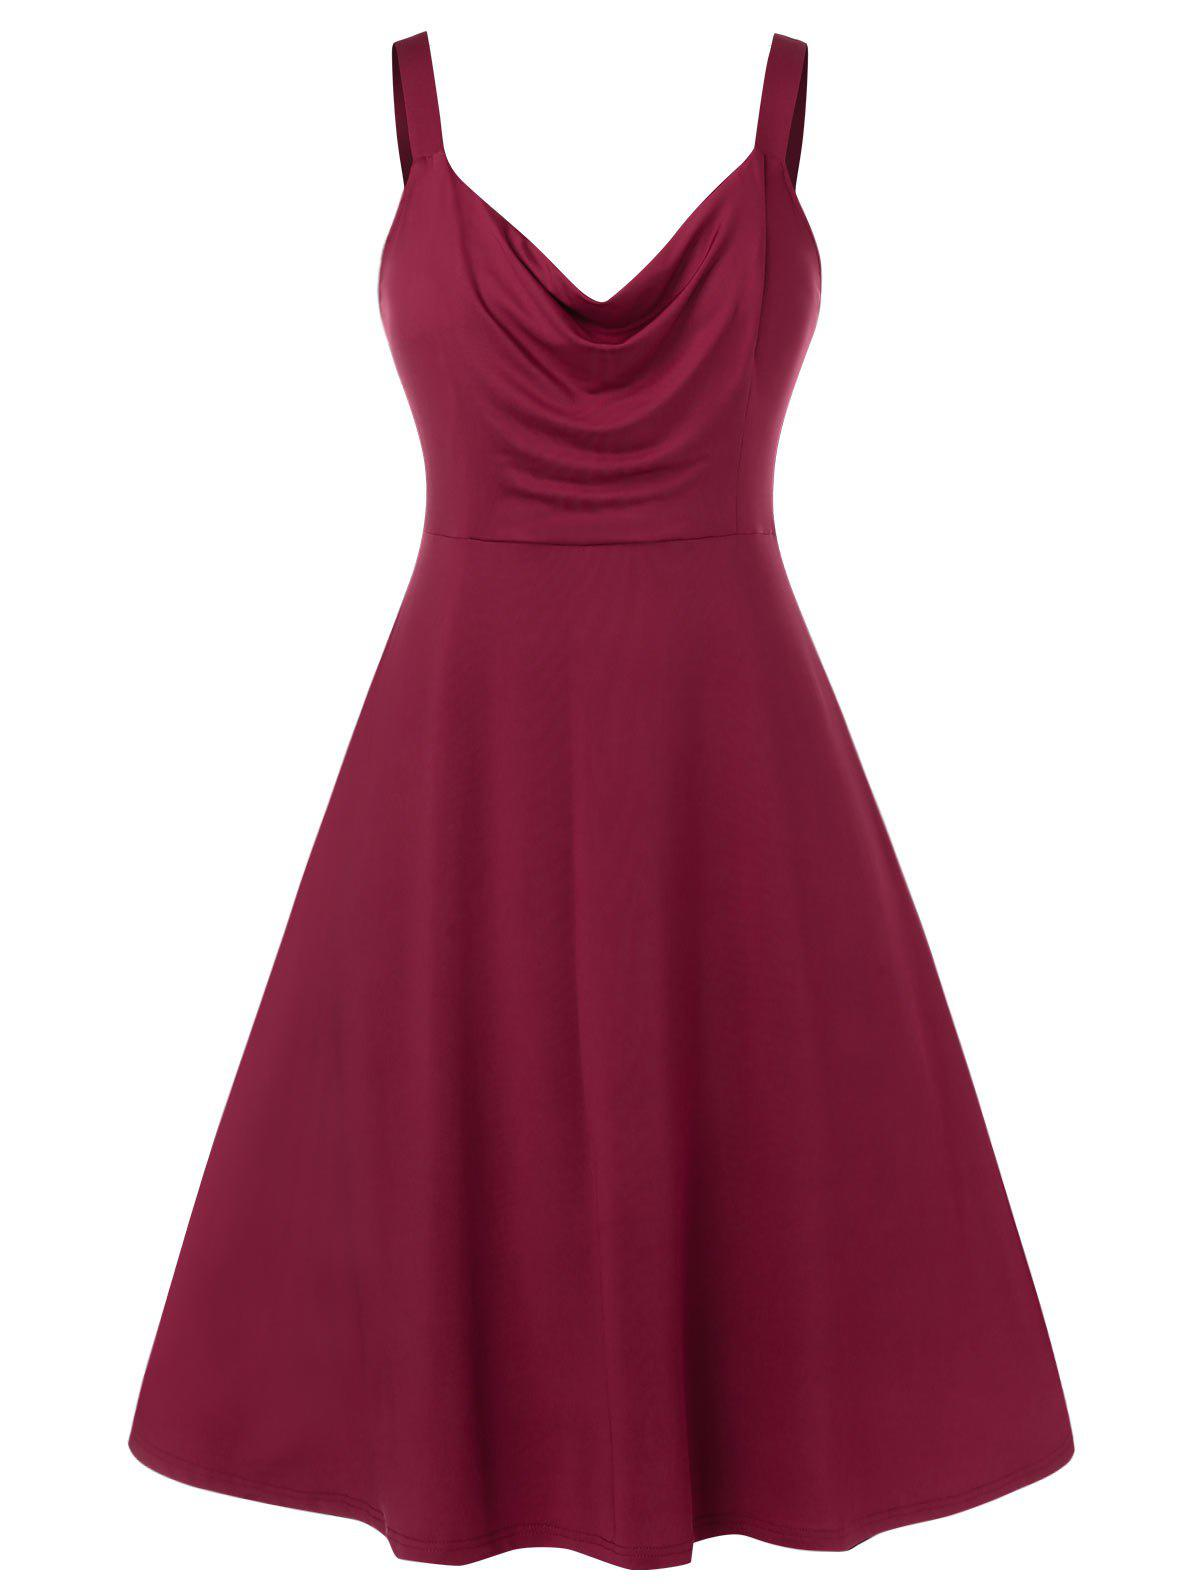 Plus Size Solid Color Ruched Sleeveless Dress - RED WINE 3X